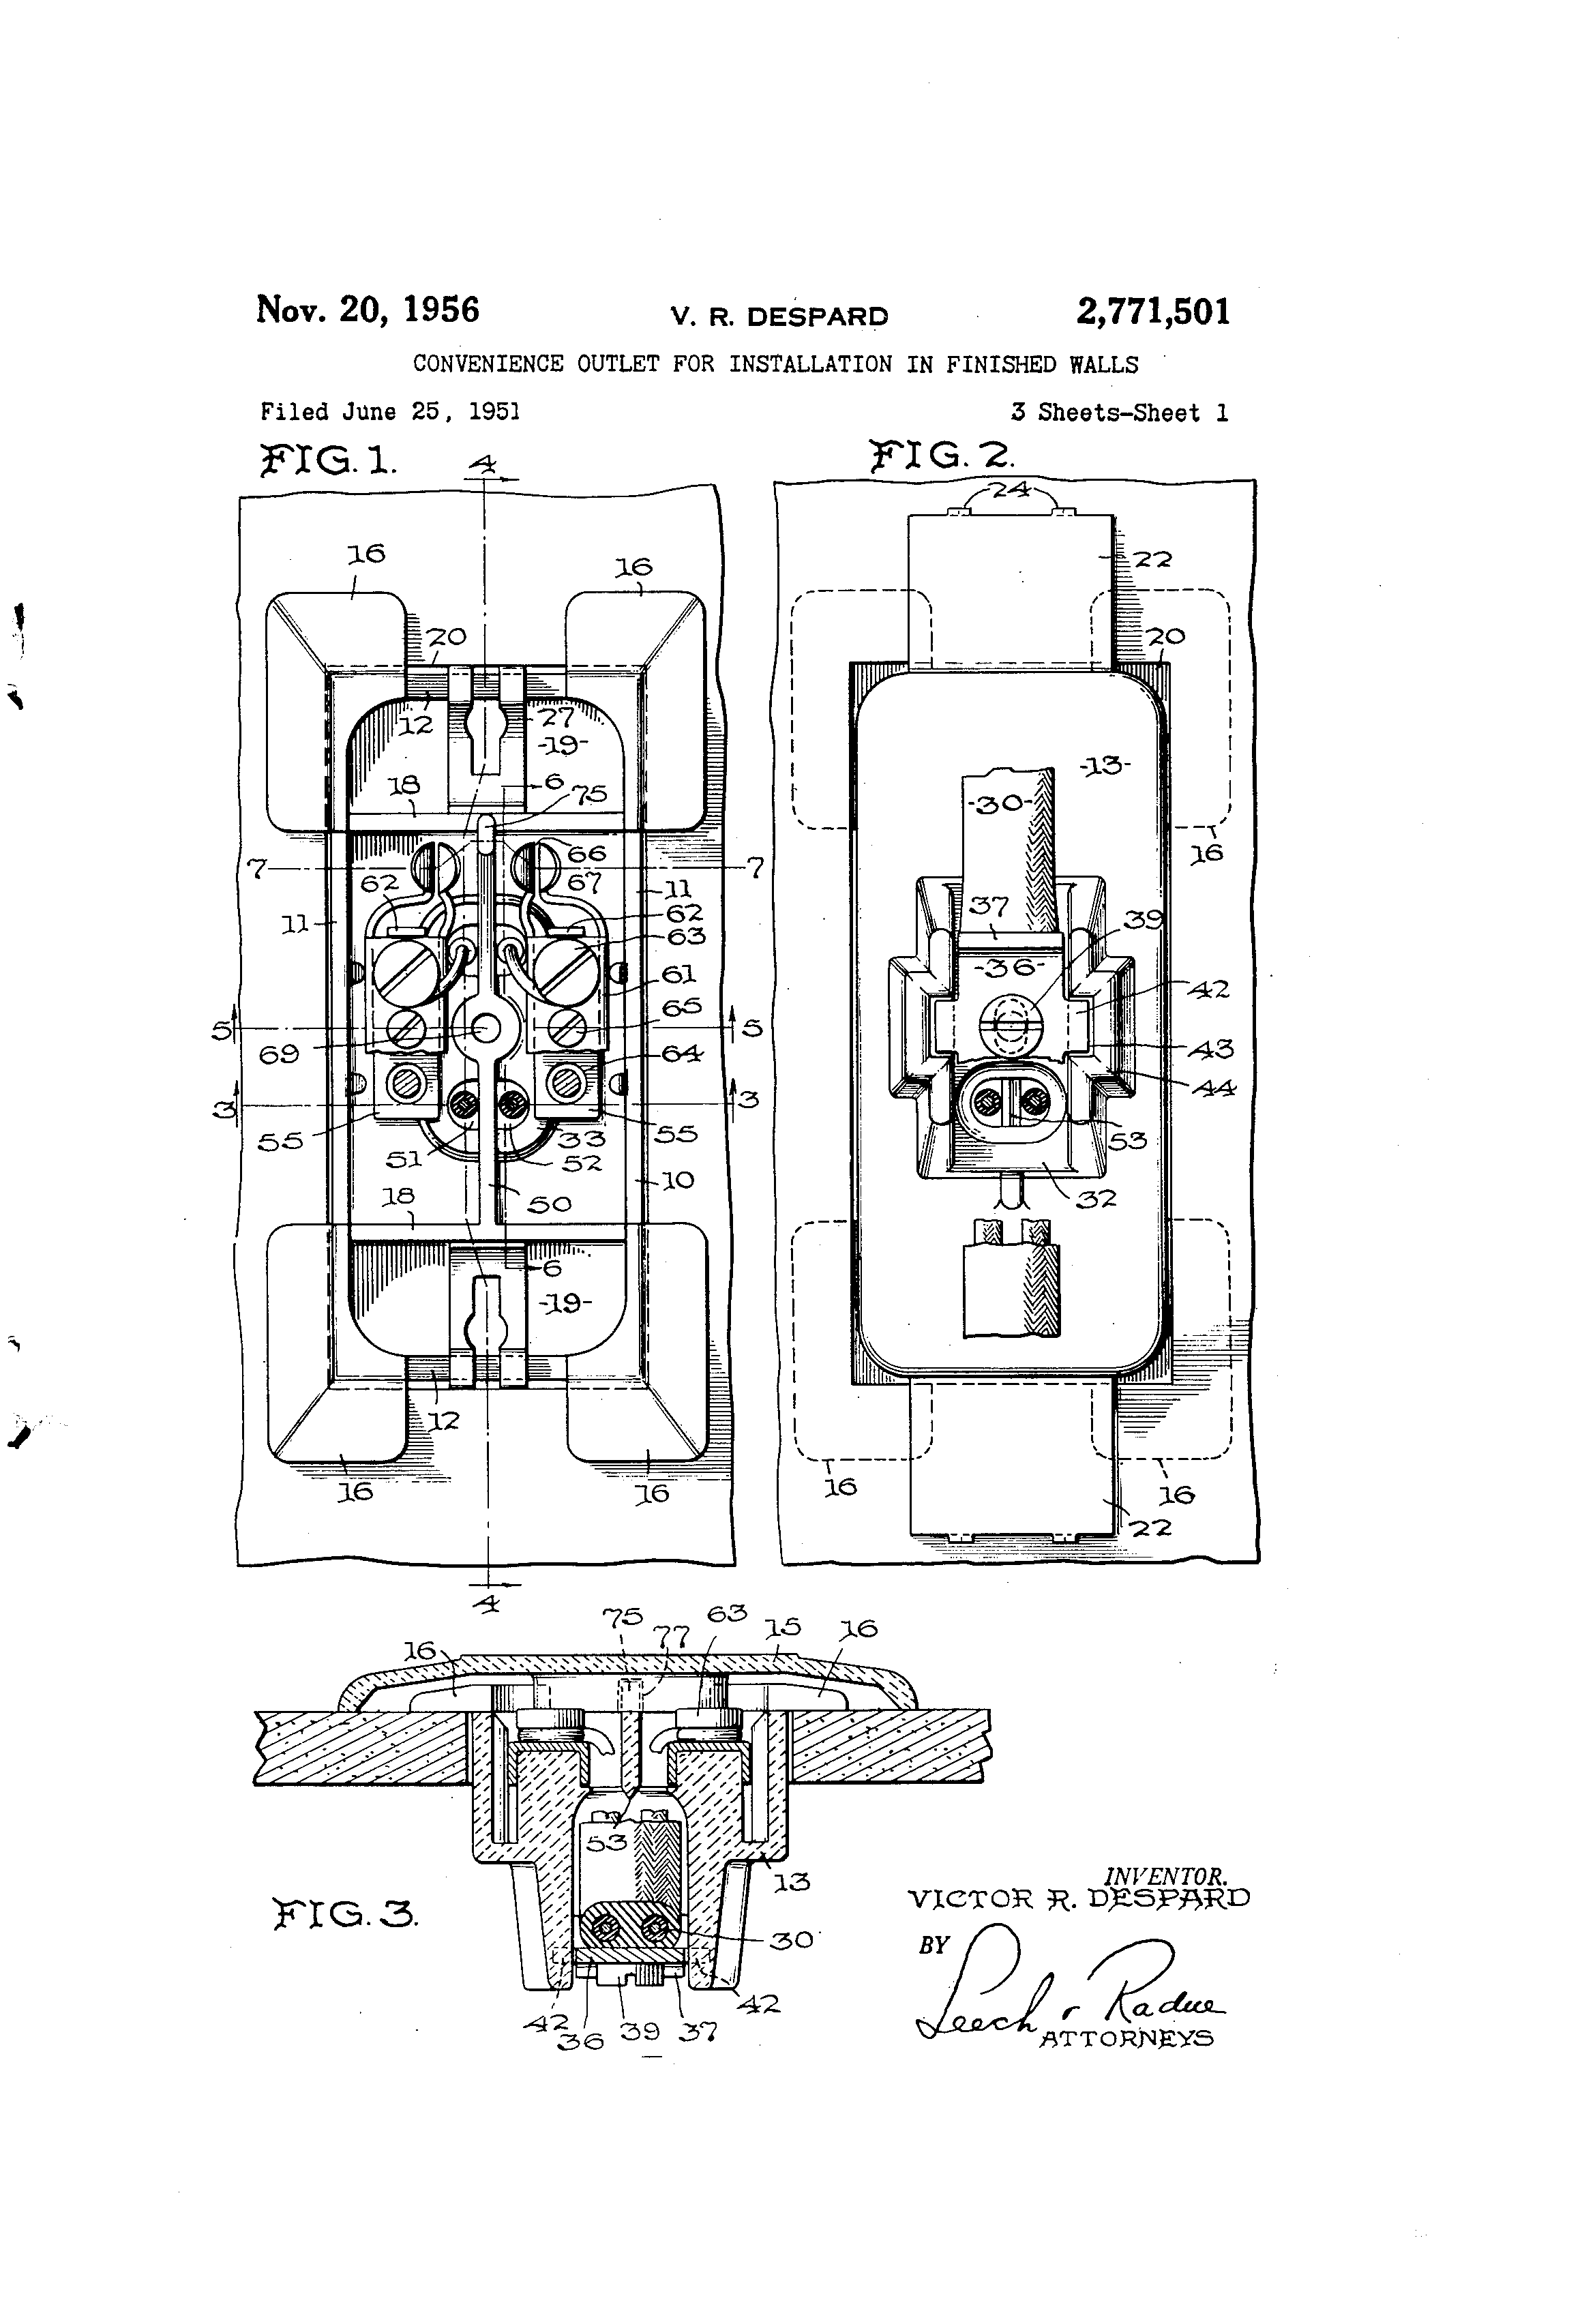 patent us2771501 - convenience outlet for installation in finished walls